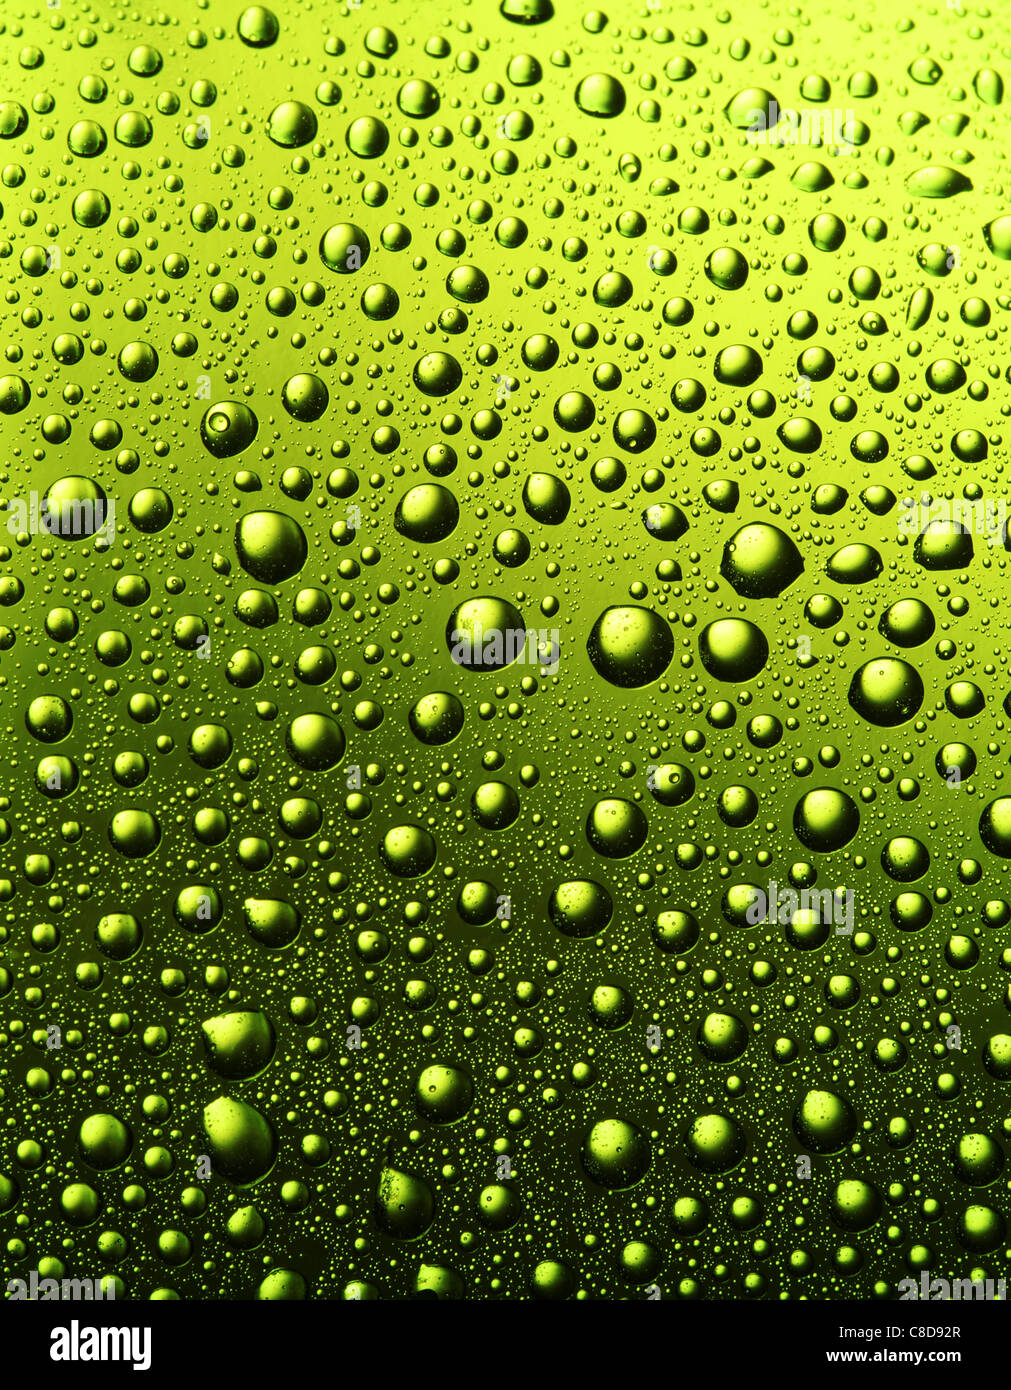 Texture of water drops on the bottle of beer. Stock Photo